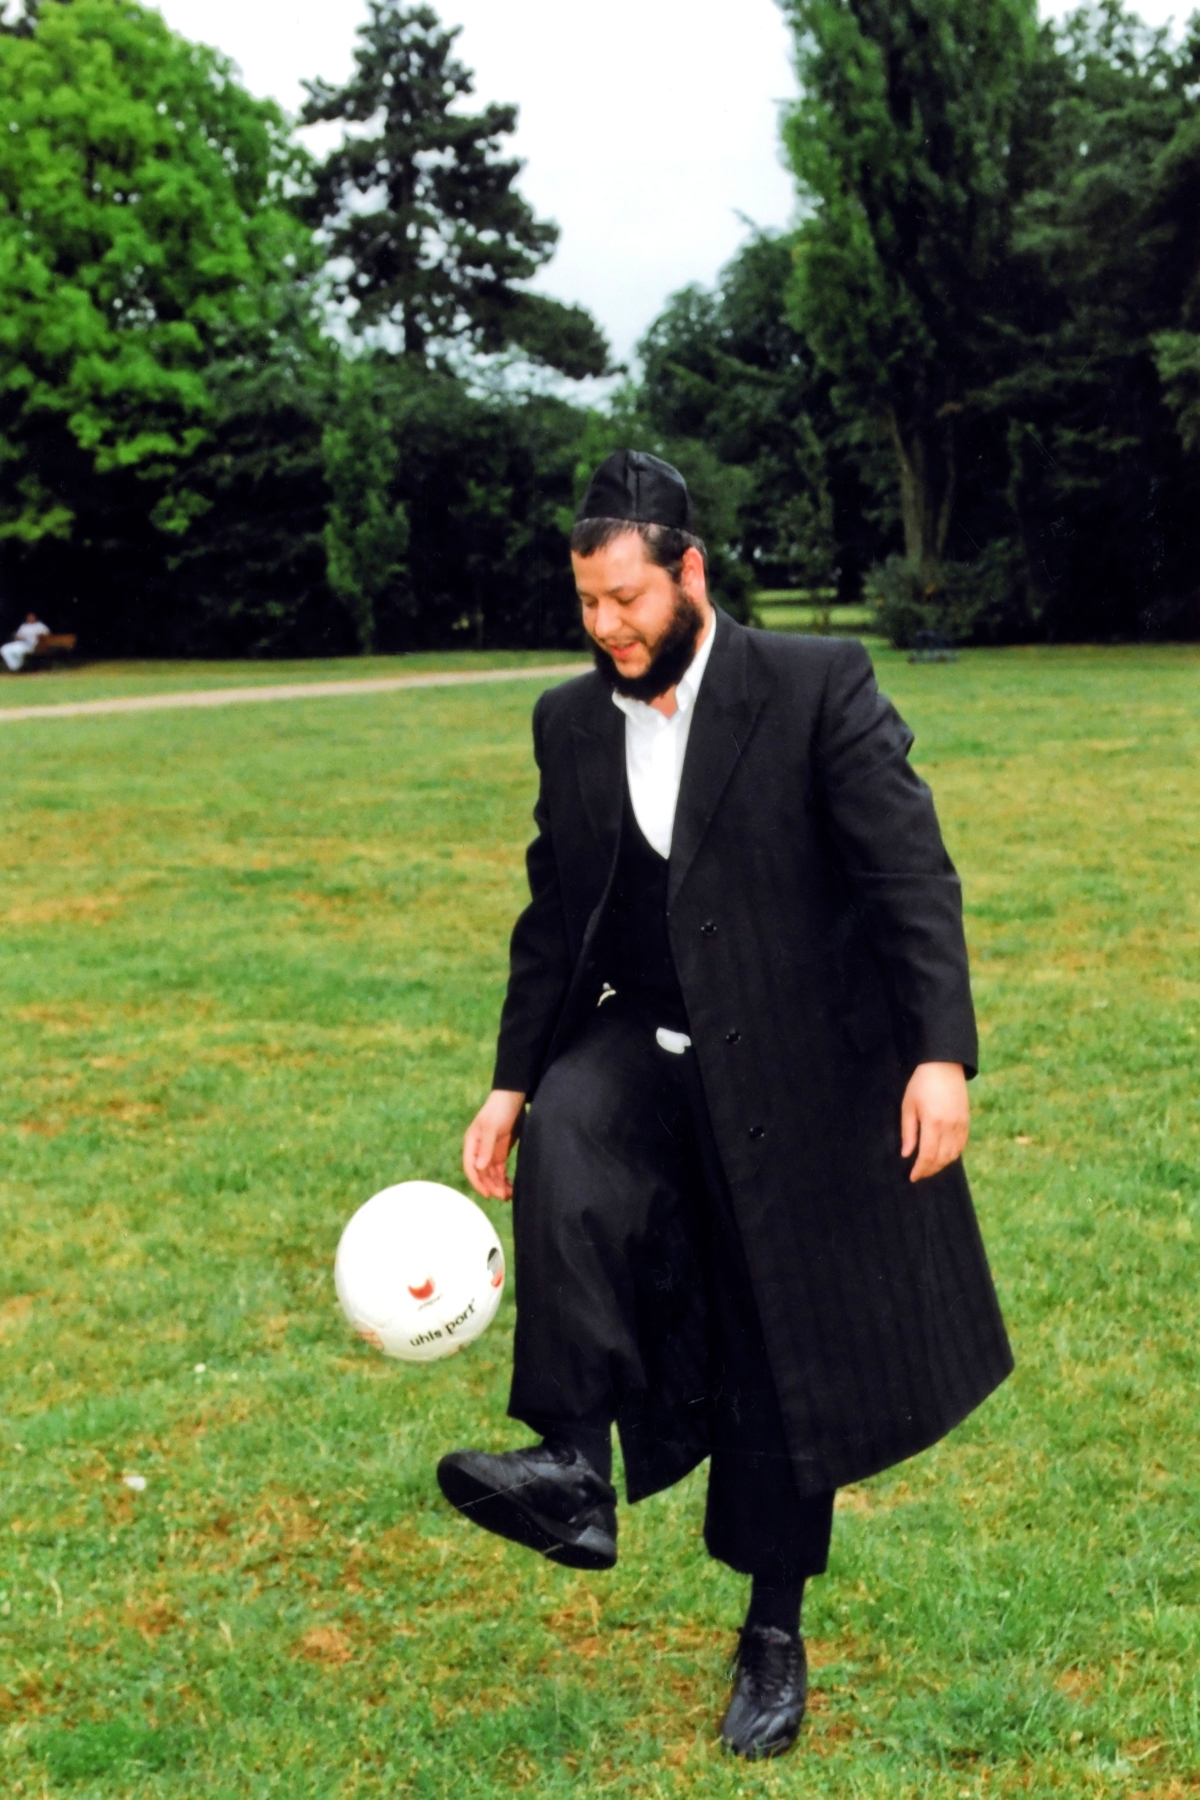 A Jewish cantor playing football. Photo by Rafael Herlich.